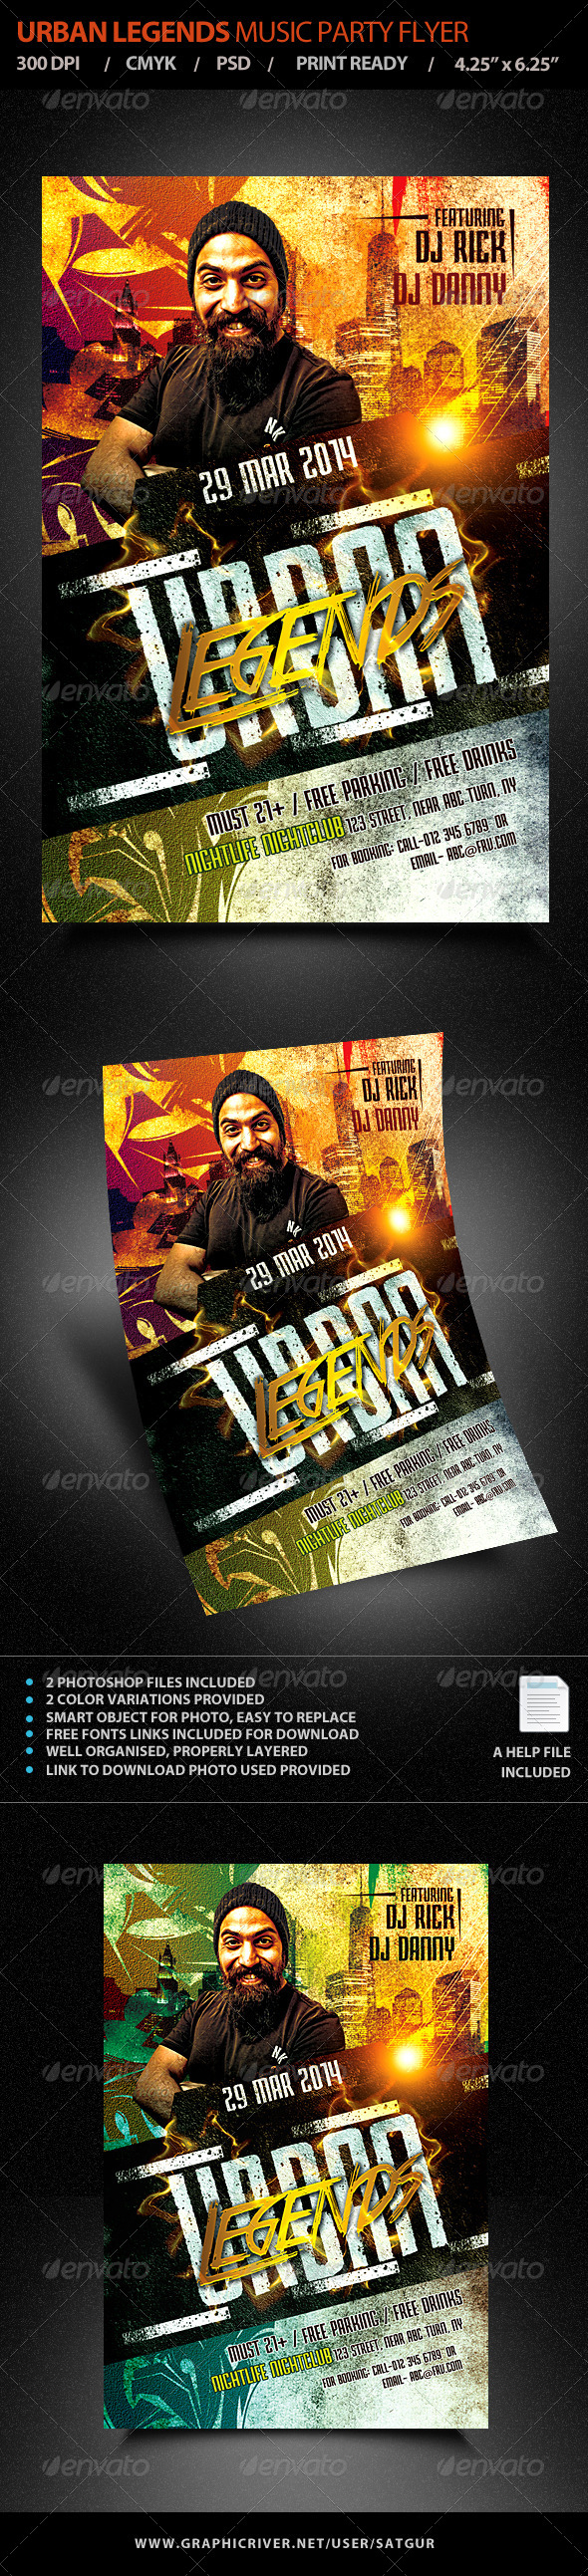 GraphicRiver Urban Legends Music Dance Party Flyer Template 7060845